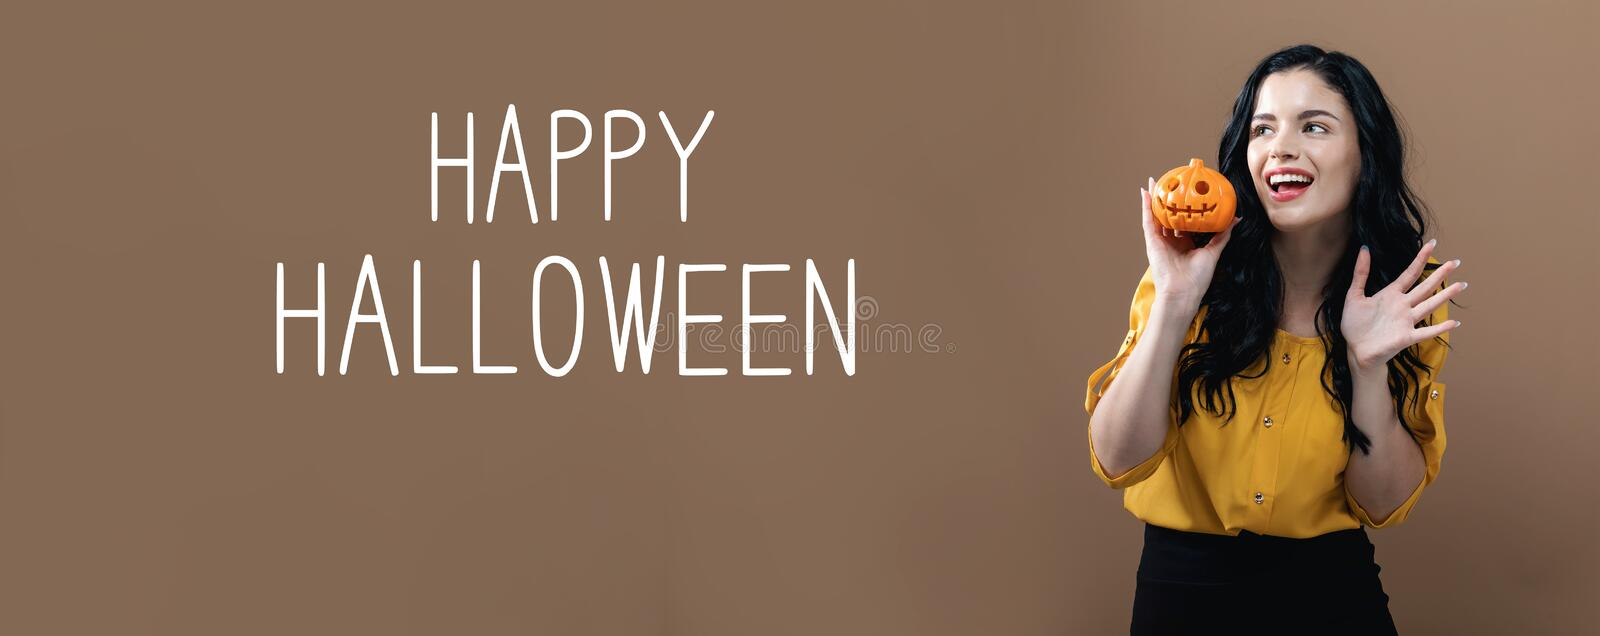 Happy Halloween with woman holding a pumpkin. Happy Halloween with young woman holding a pumpkin royalty free stock photos